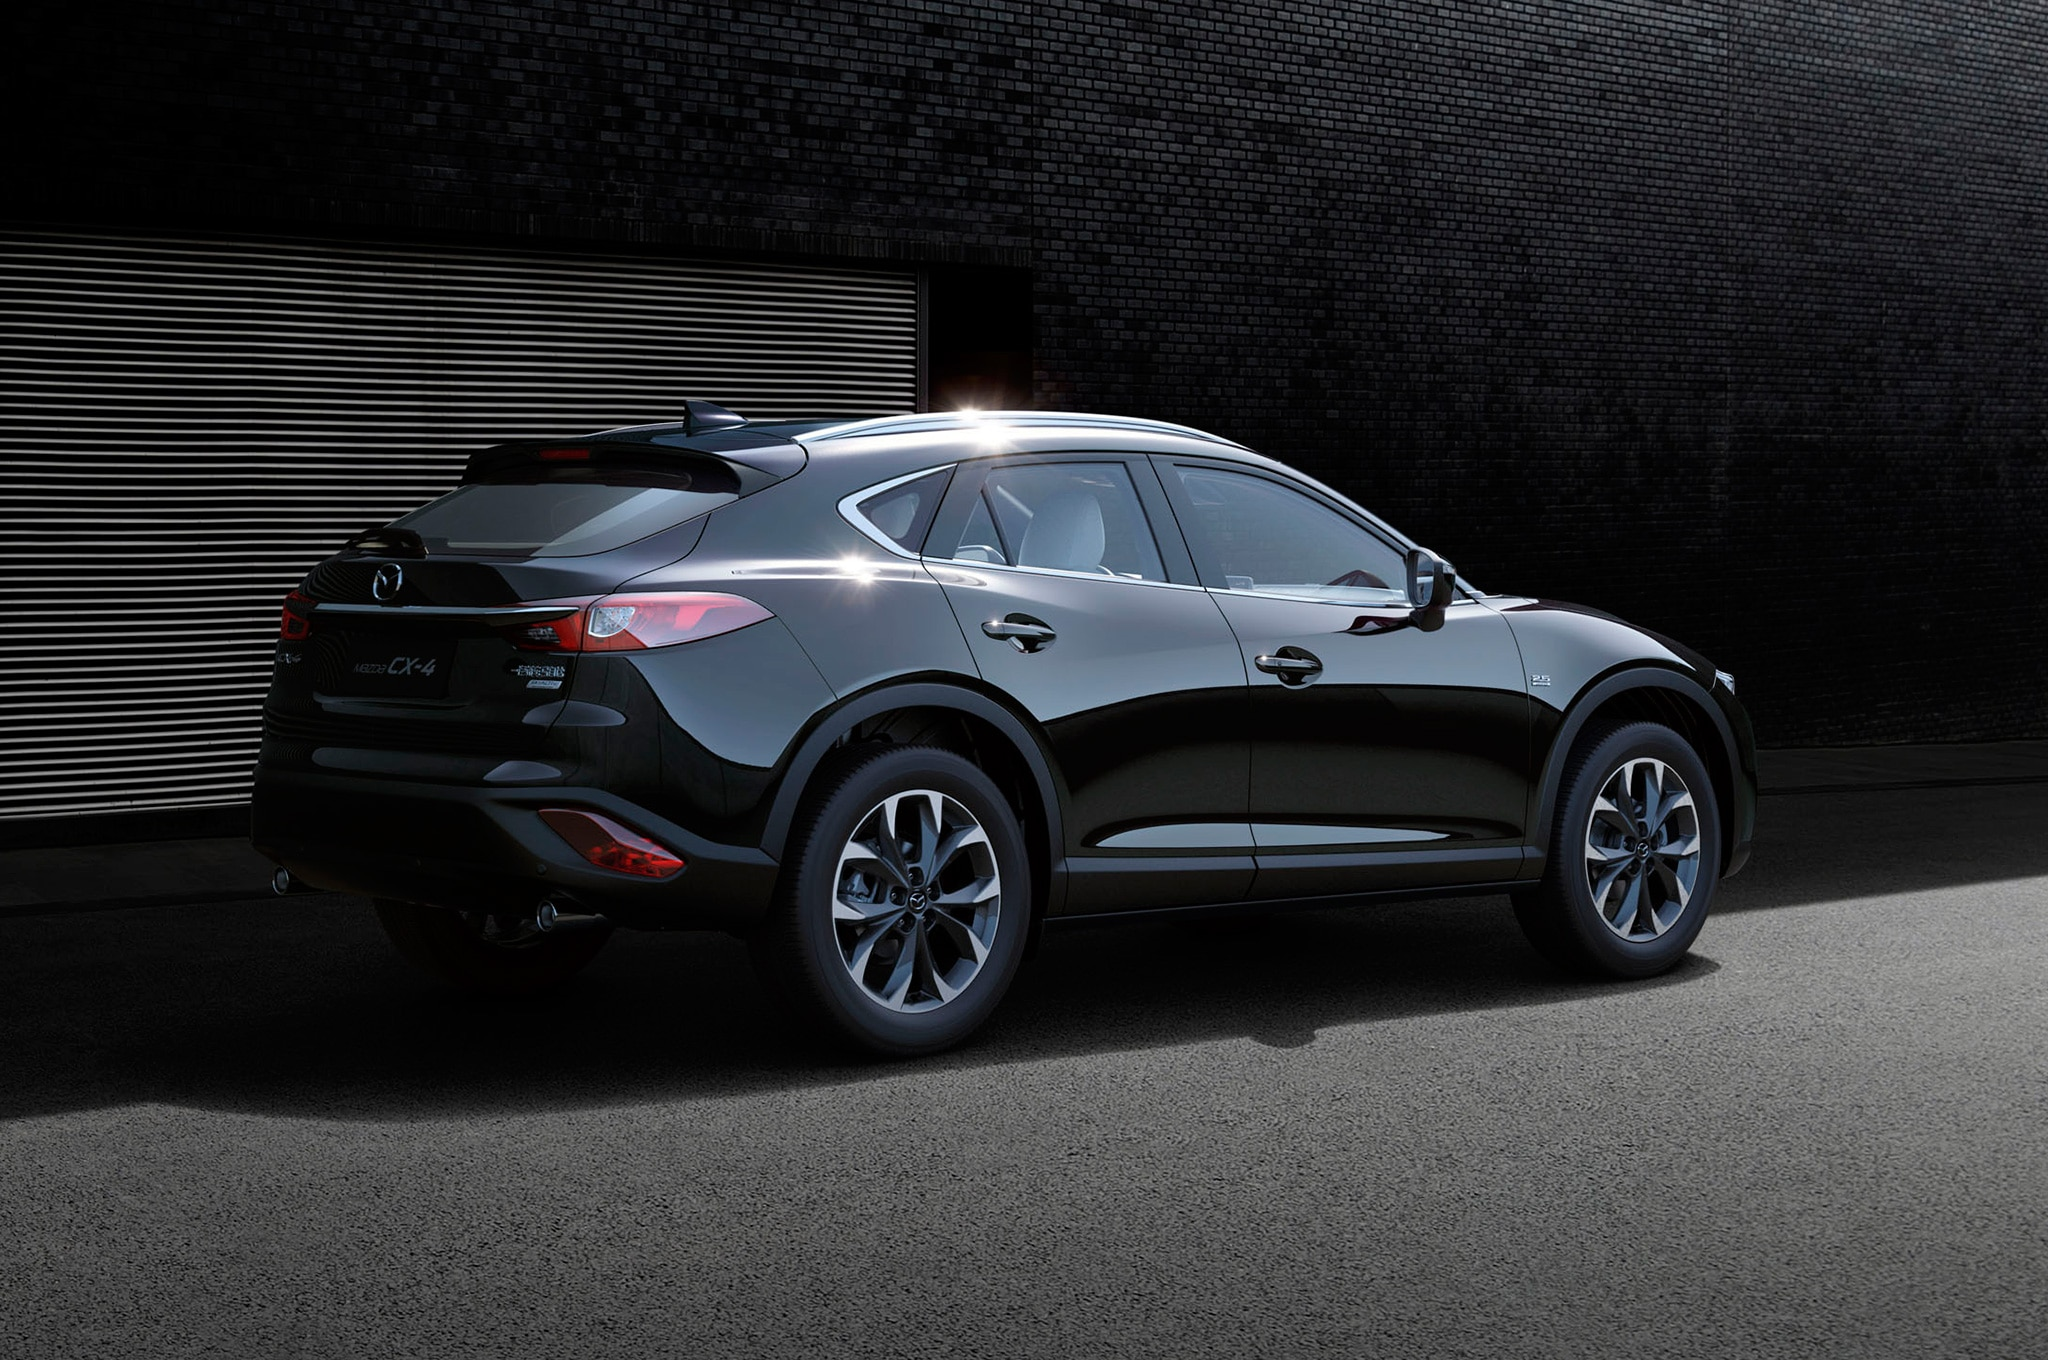 Mazda Cx 4 Crossover Revealed In Beijing Exclusive To China